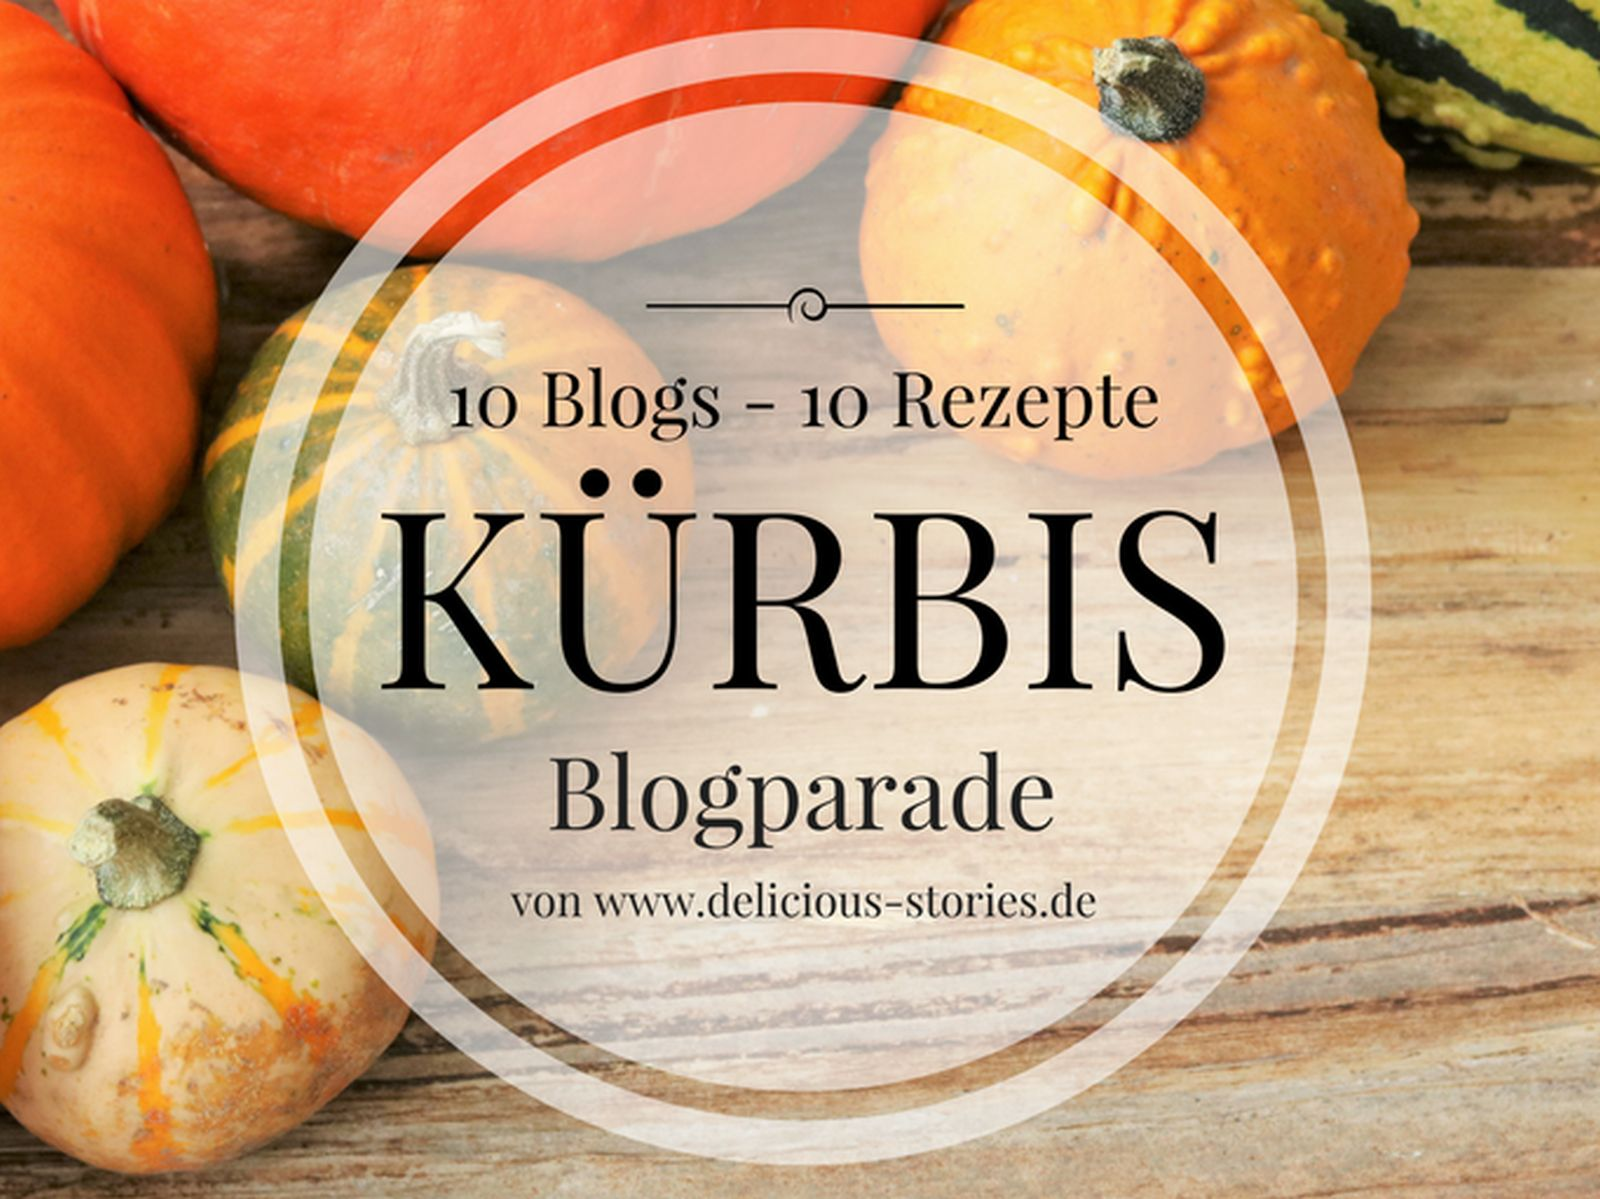 Blog Parade Kürbis